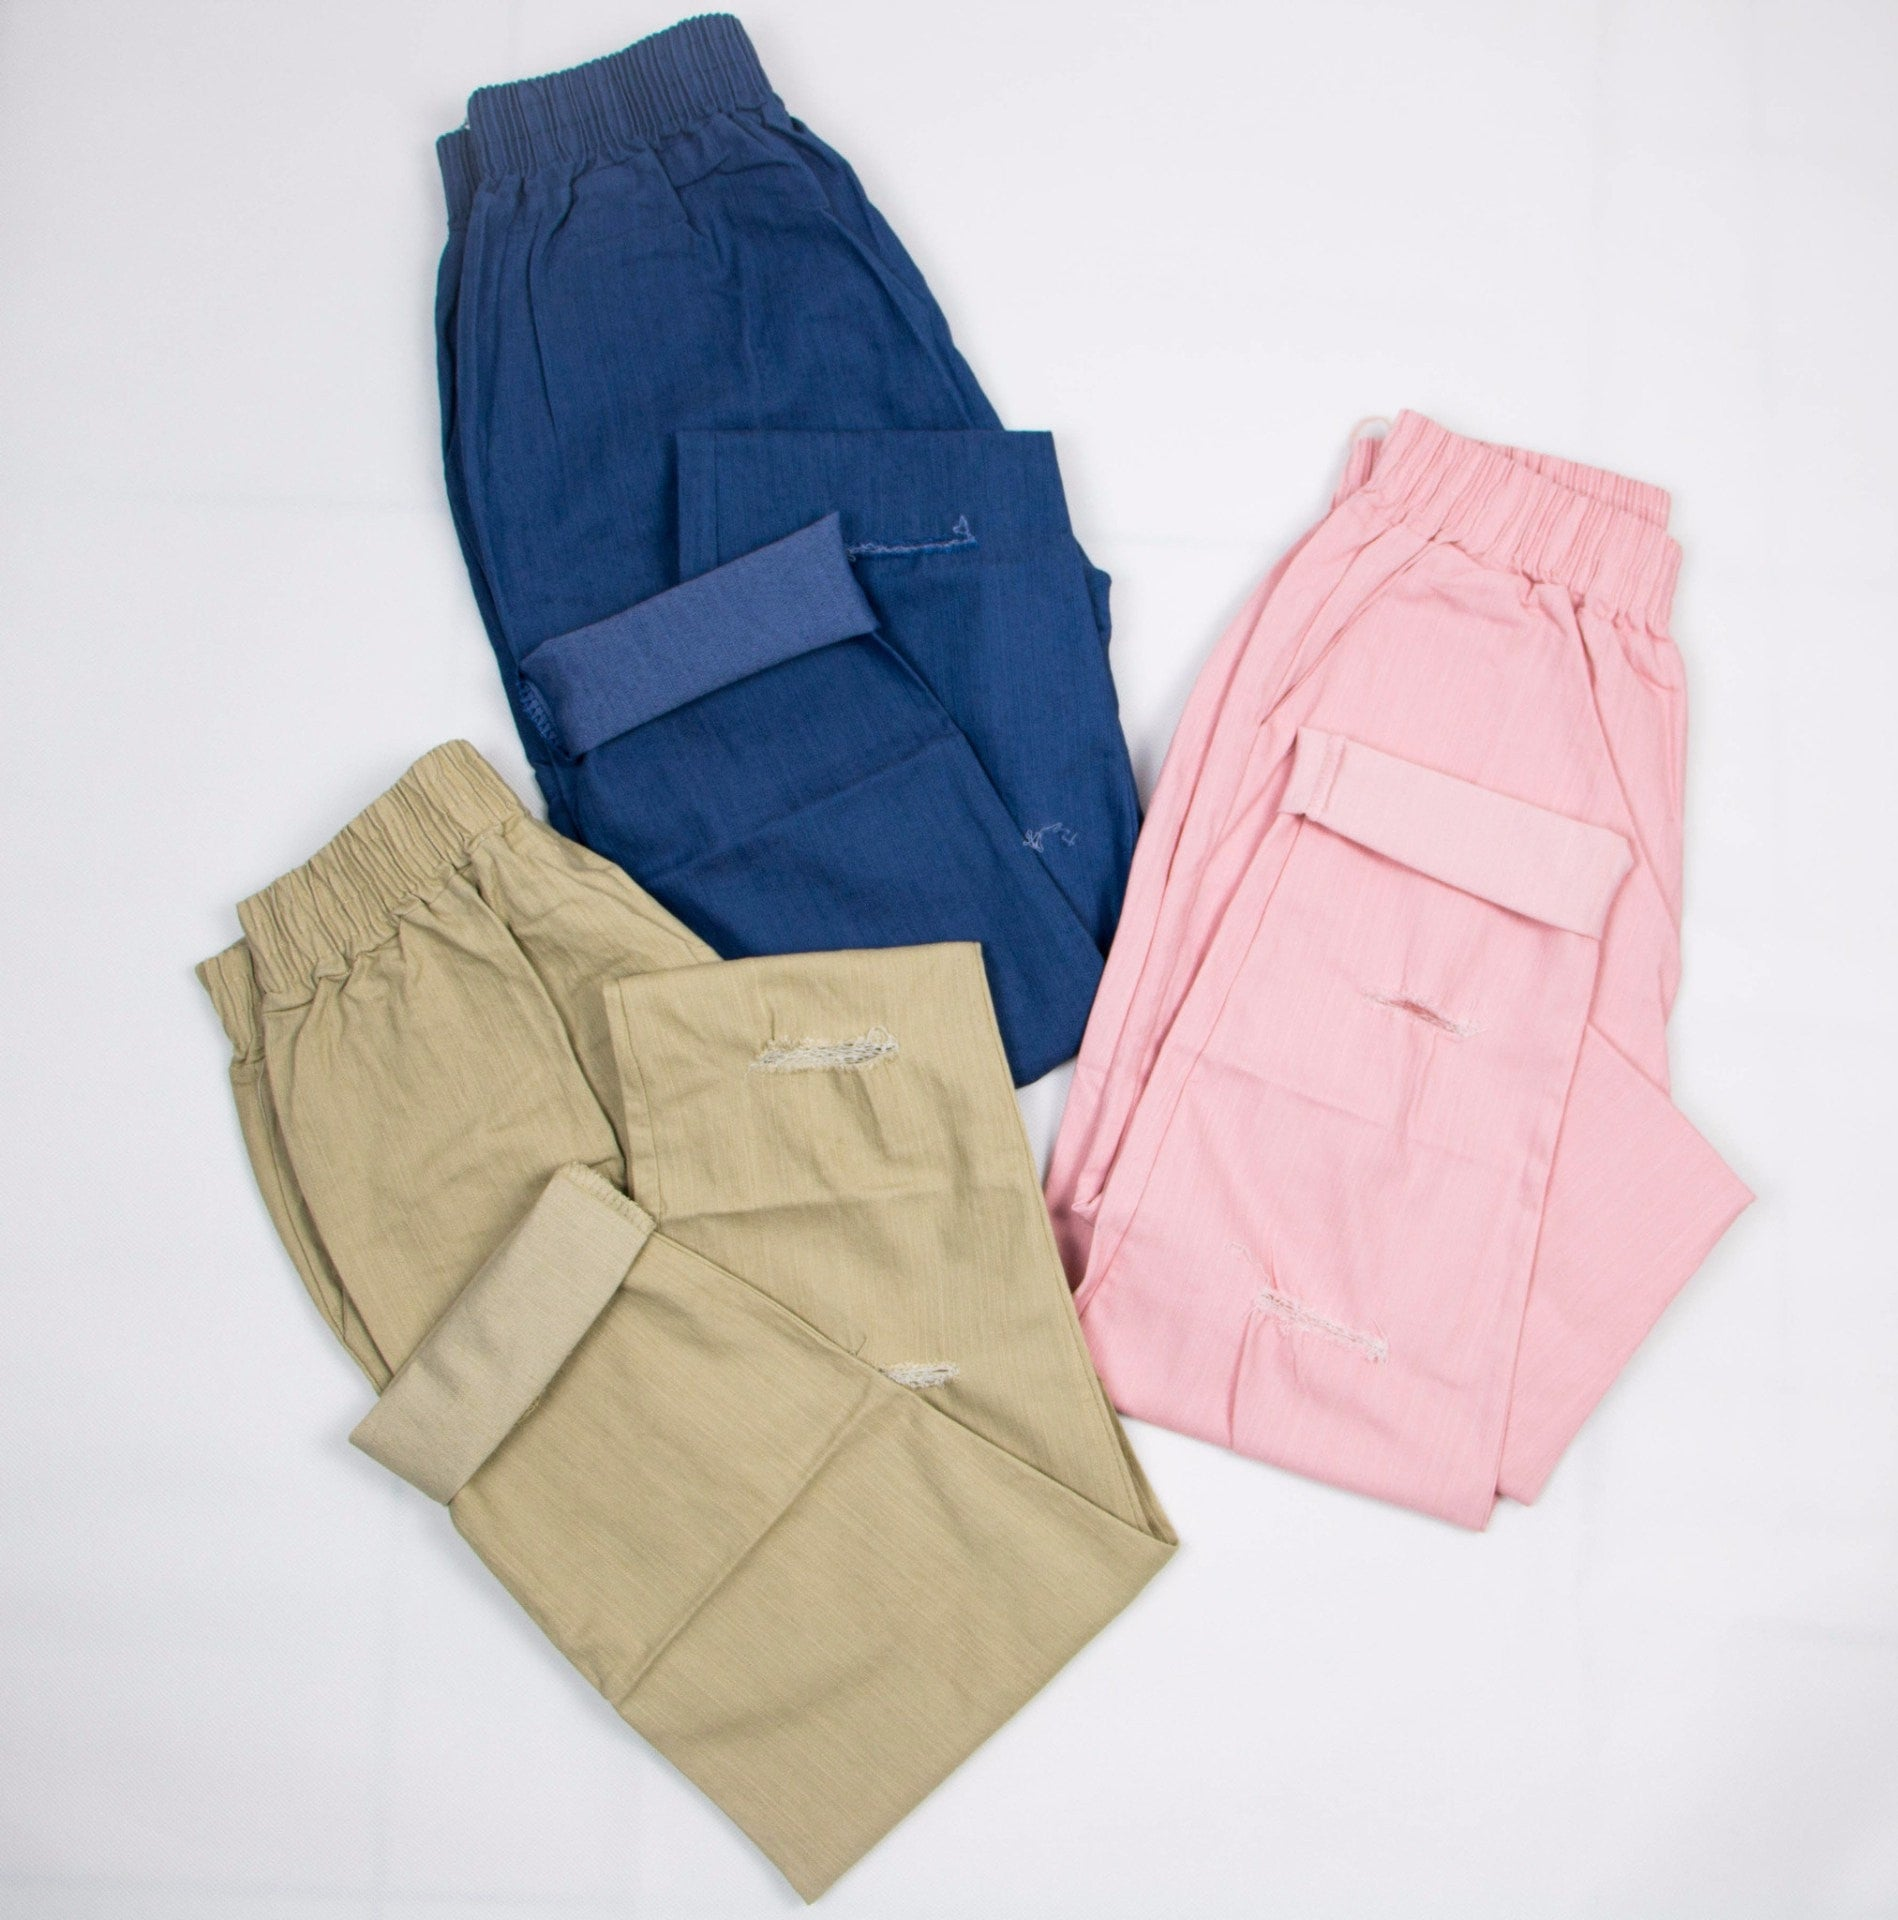 Korean Fashion - Shoes and Clothing - Baggy Jogger Sweatpants - Bottoms - Free Size / Khaki - Gangnam Styles - 4